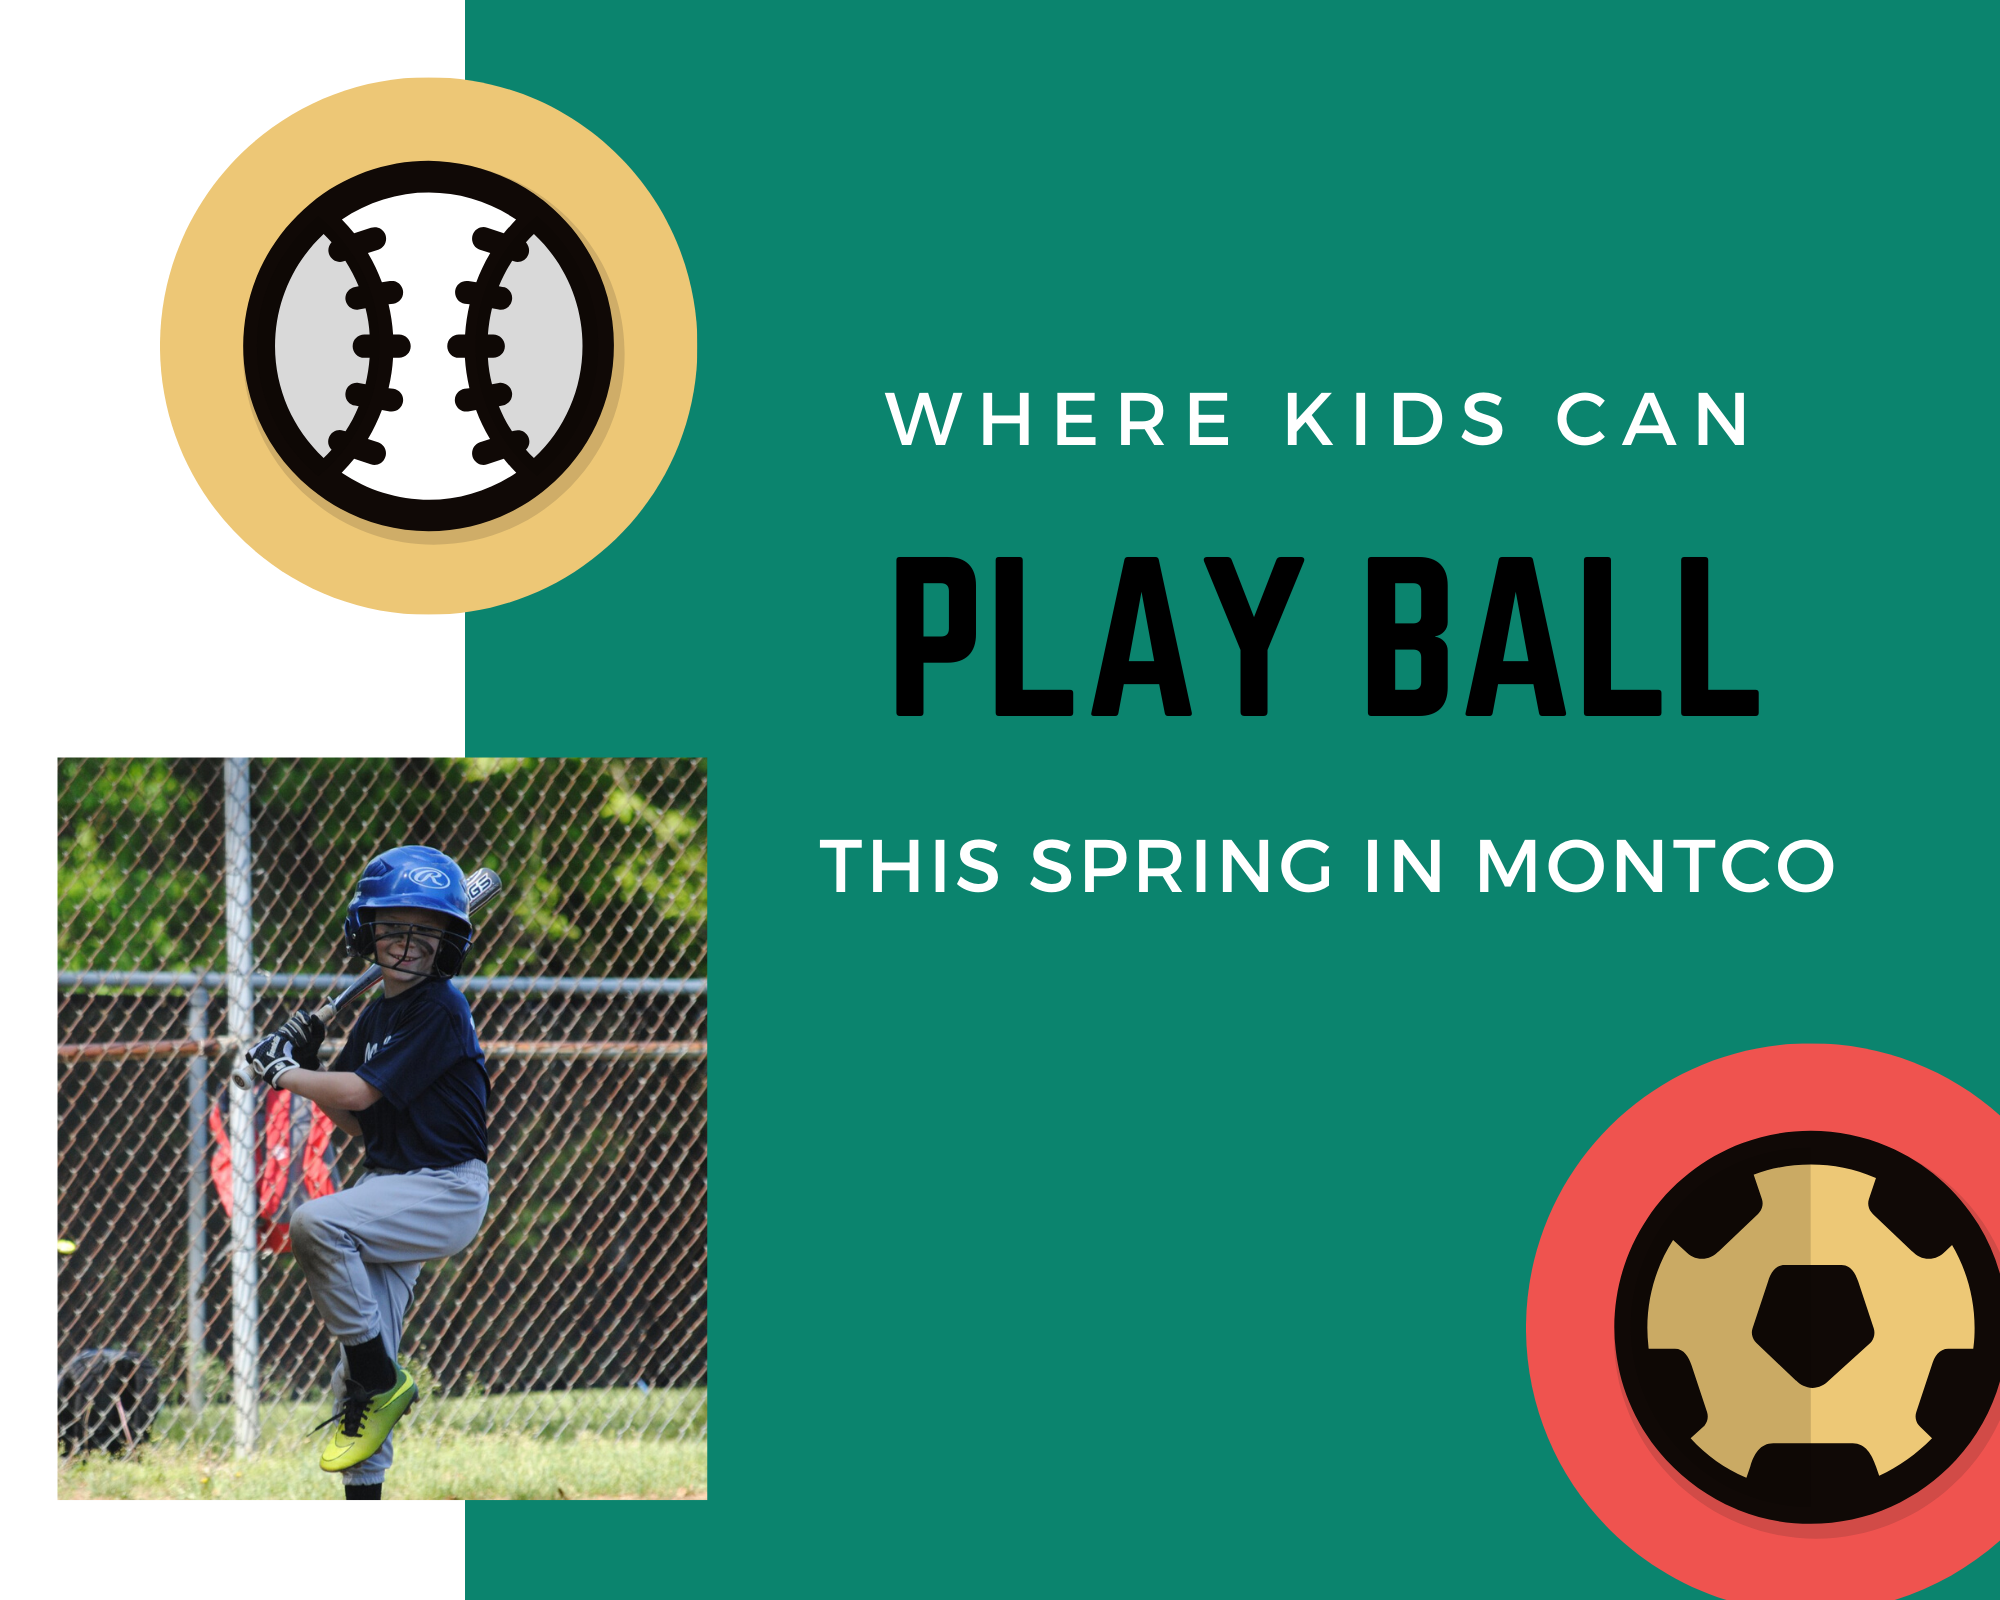 Where Kids Can Play Ball in Montco This Spring